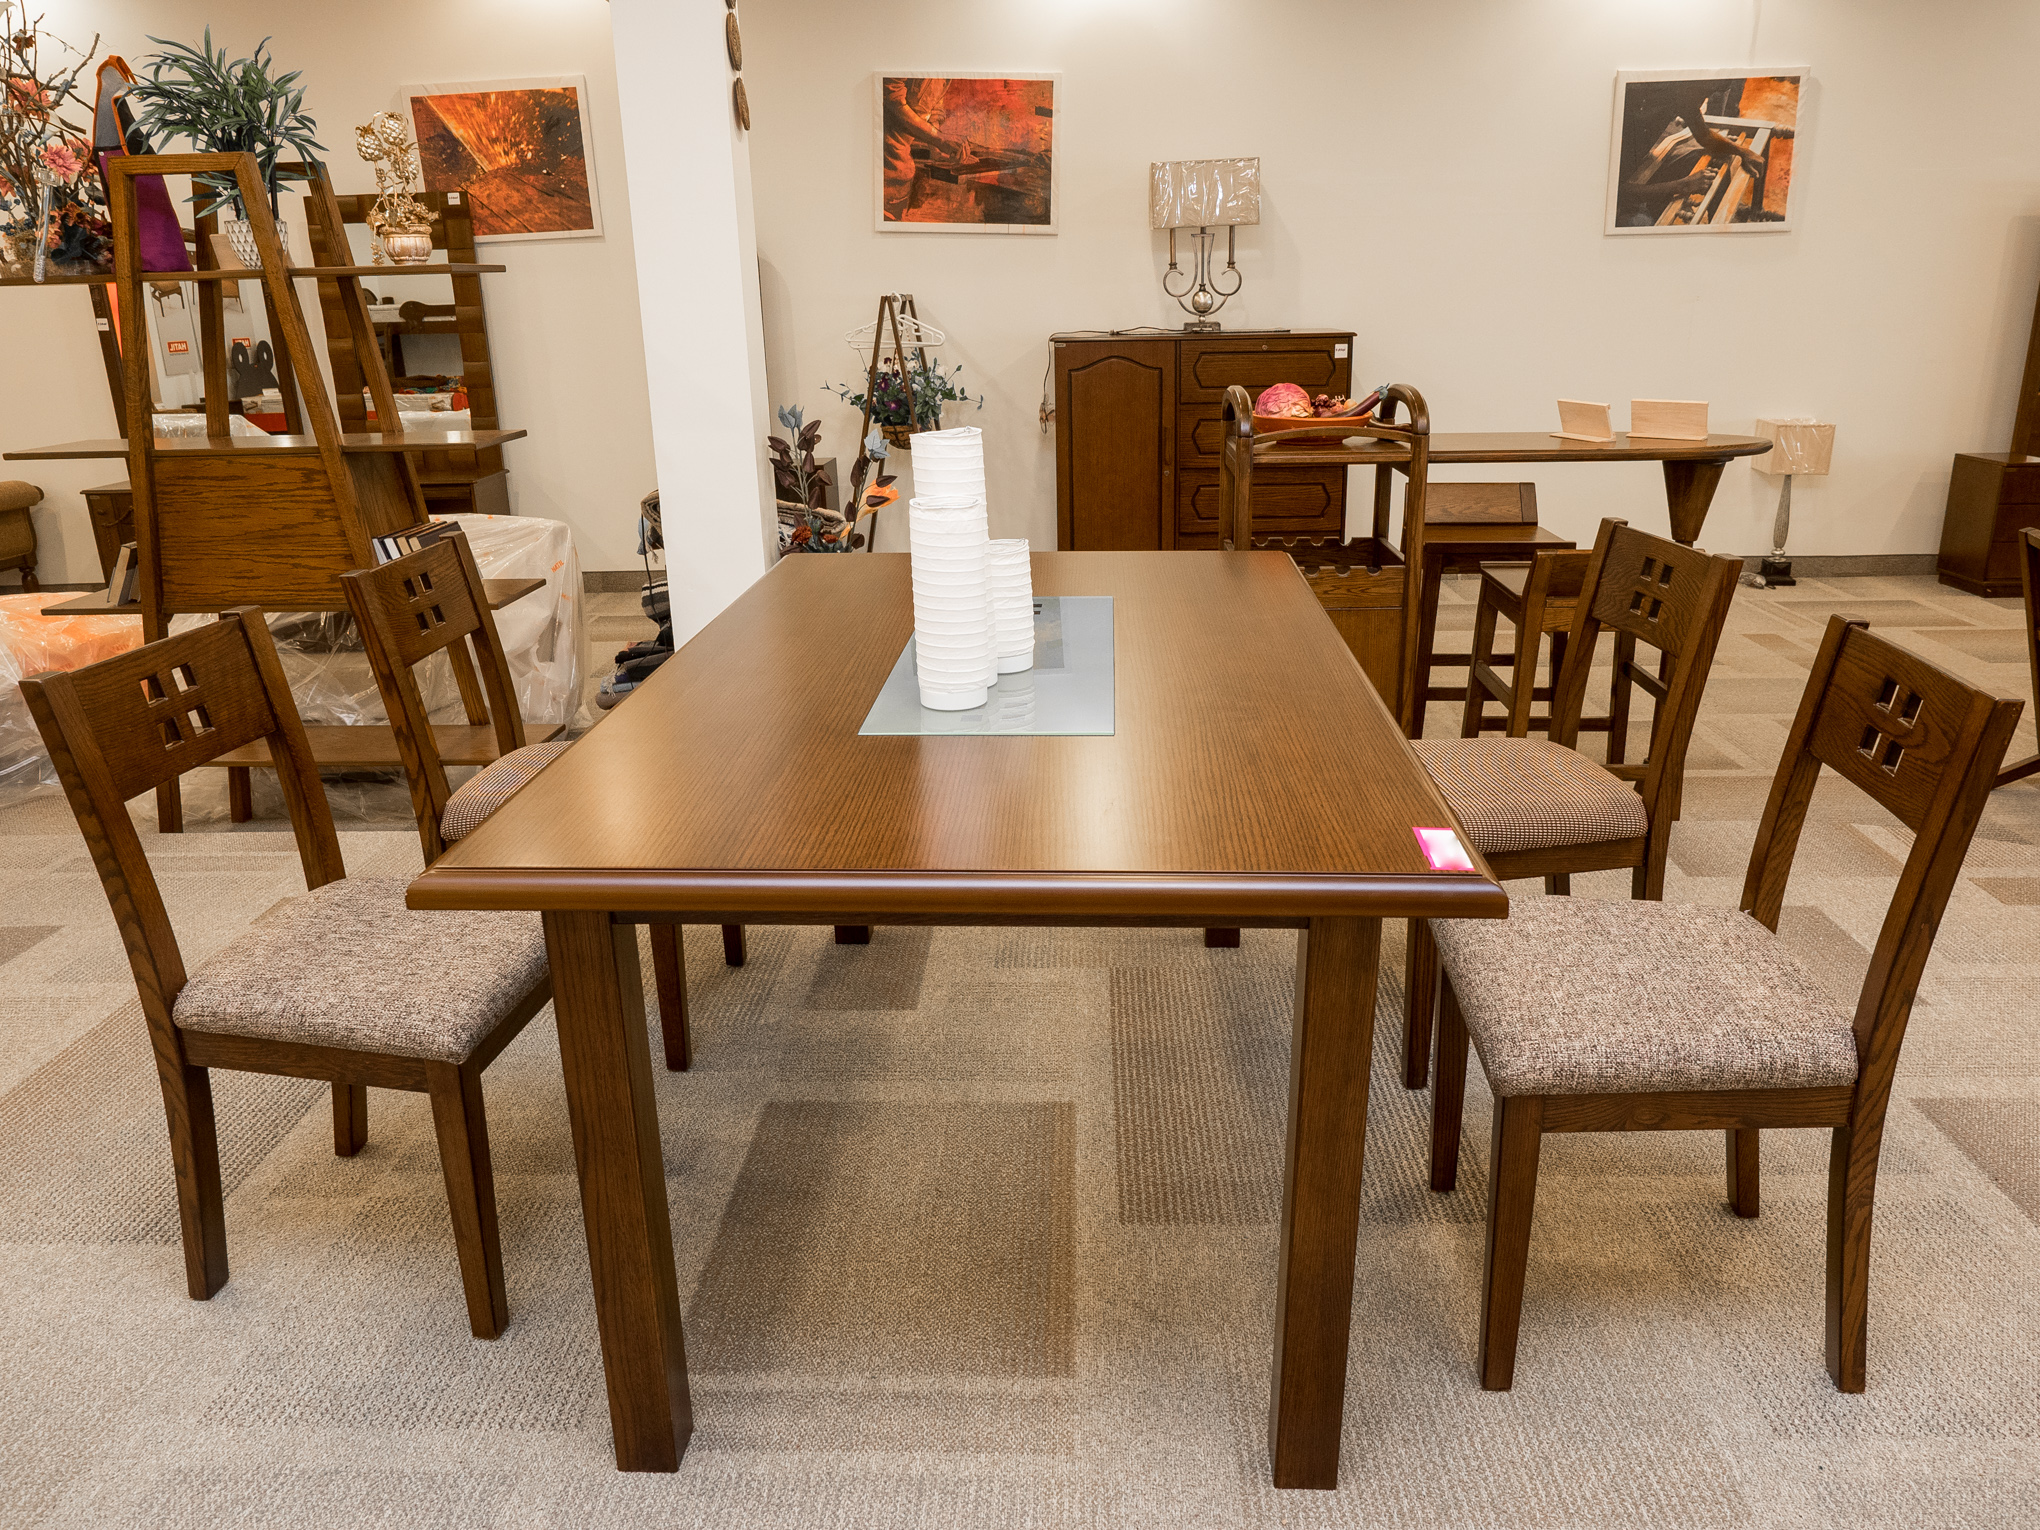 6 seater (4 shown) square patterned dining set